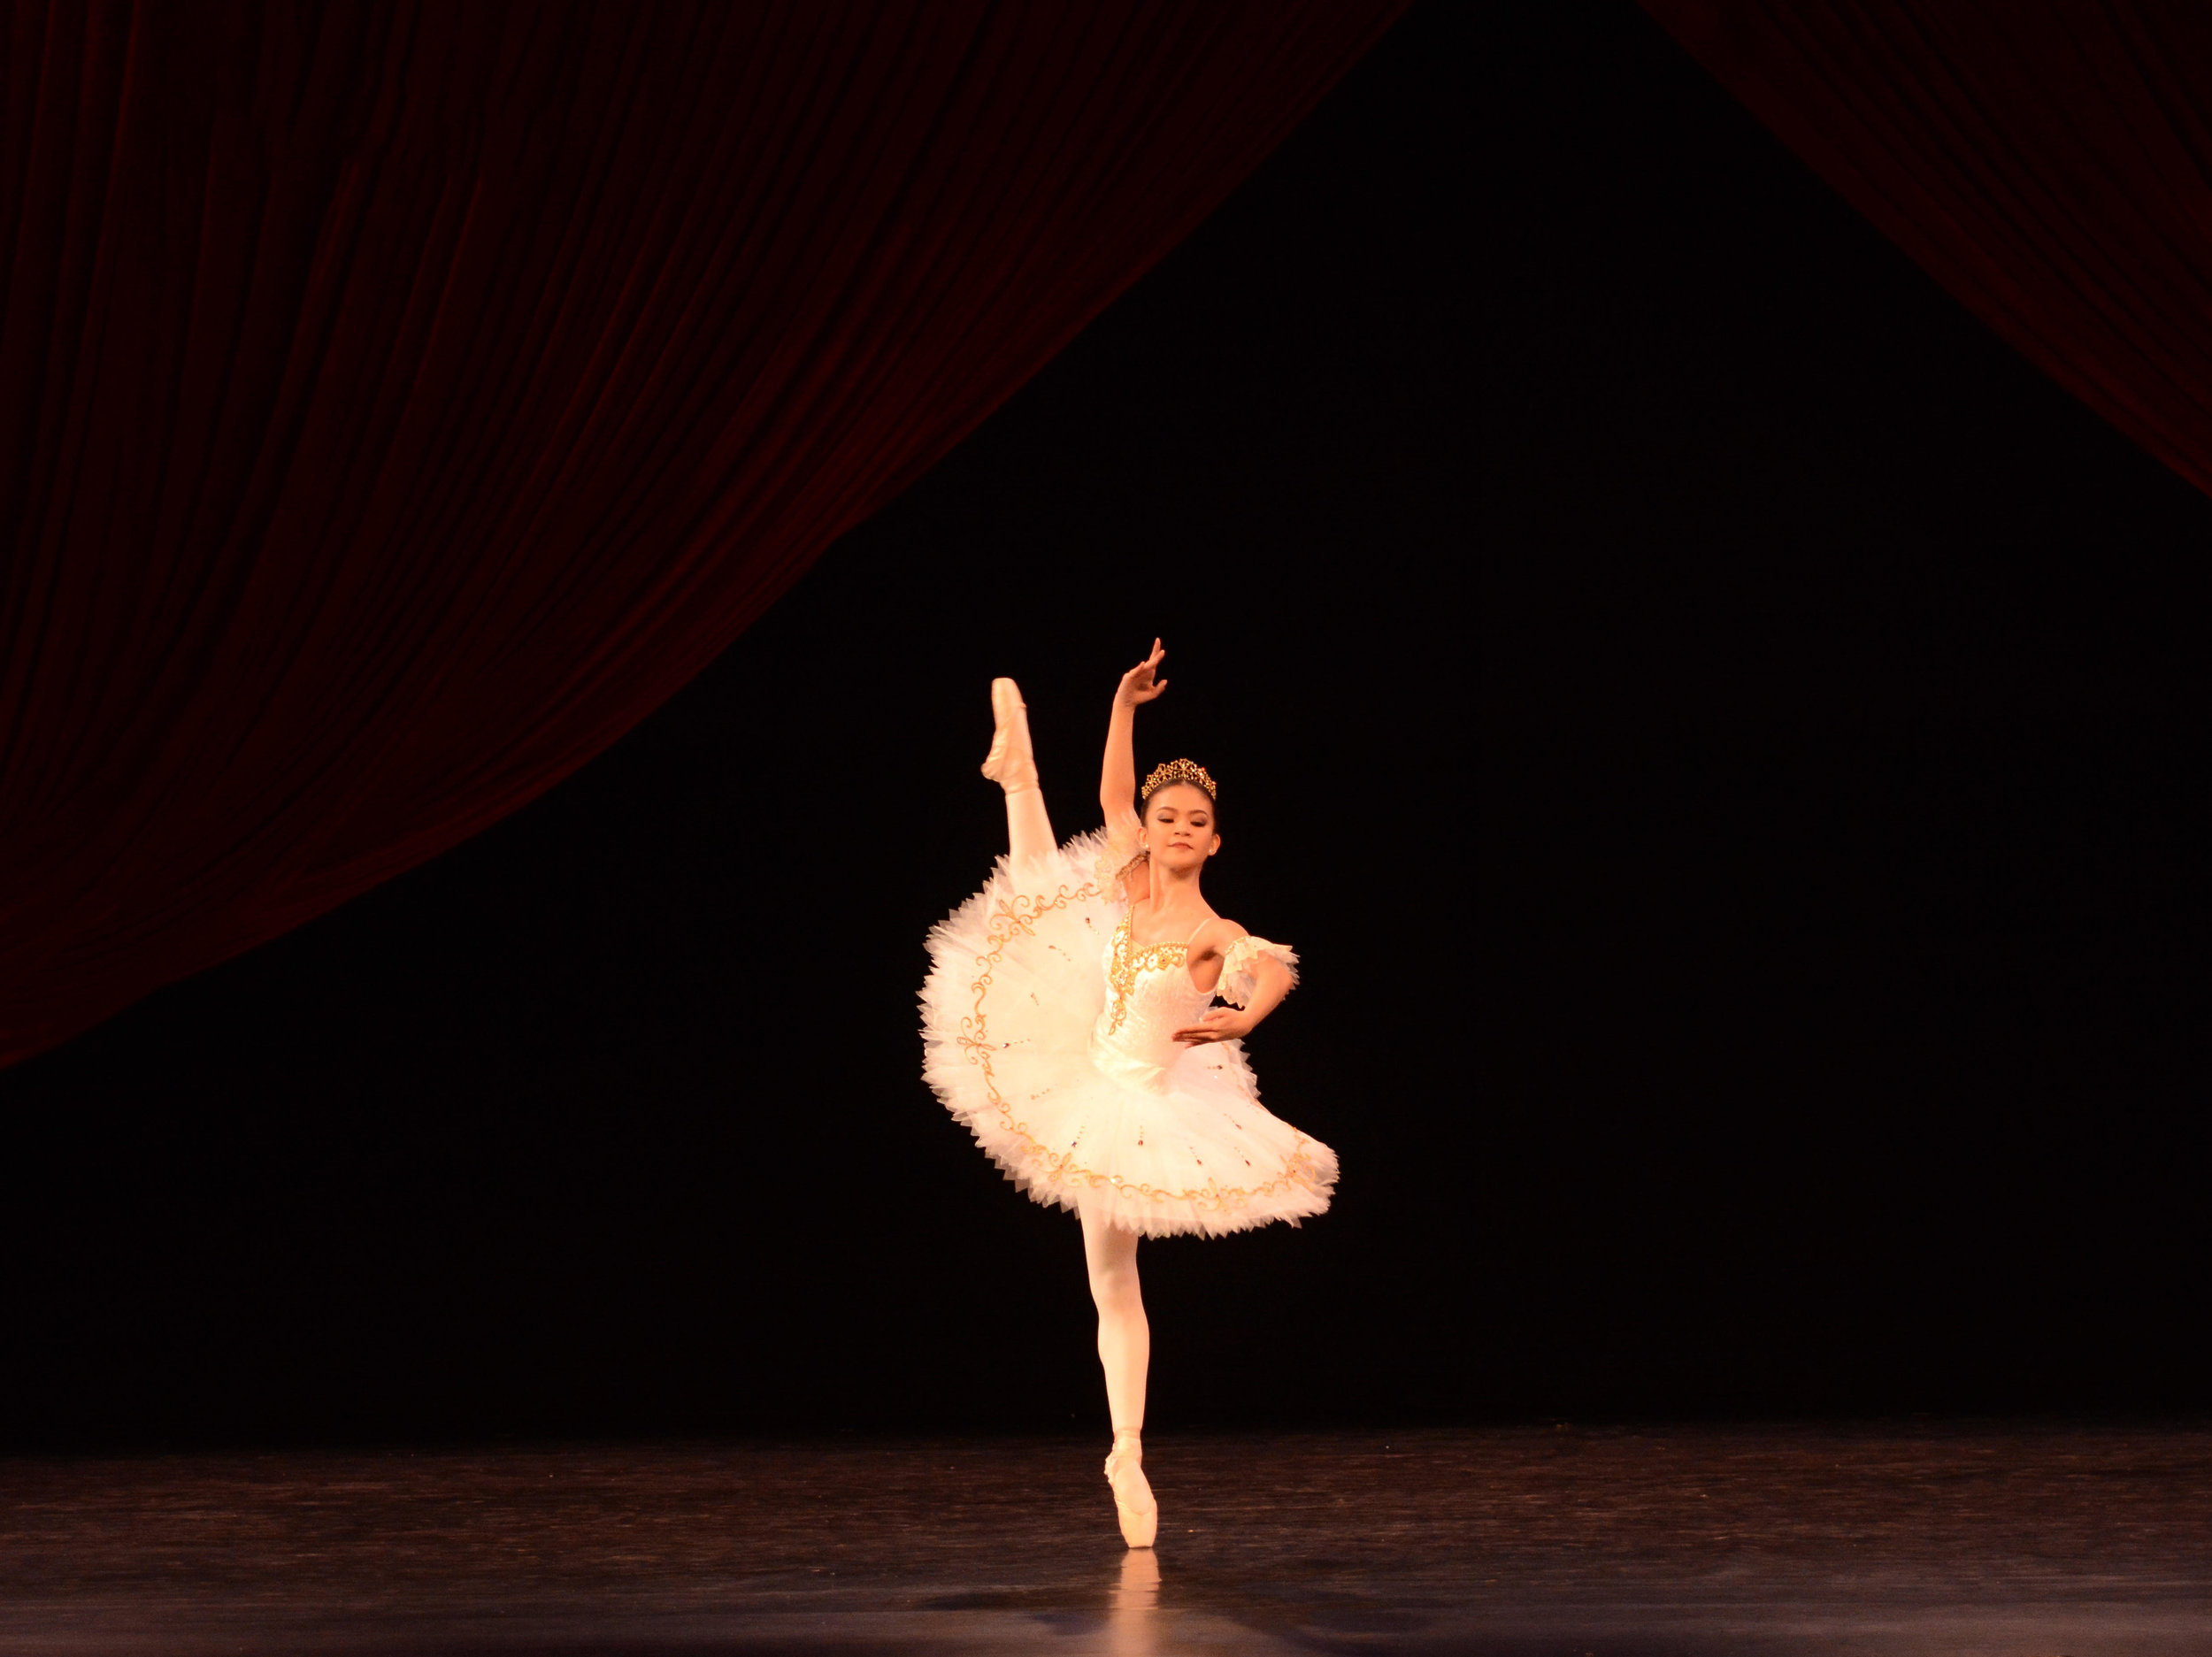 Shaira Comeros, Finalist, Senior: Sleeping Beauty Act 3 Variation. Photo by MarBi Photography